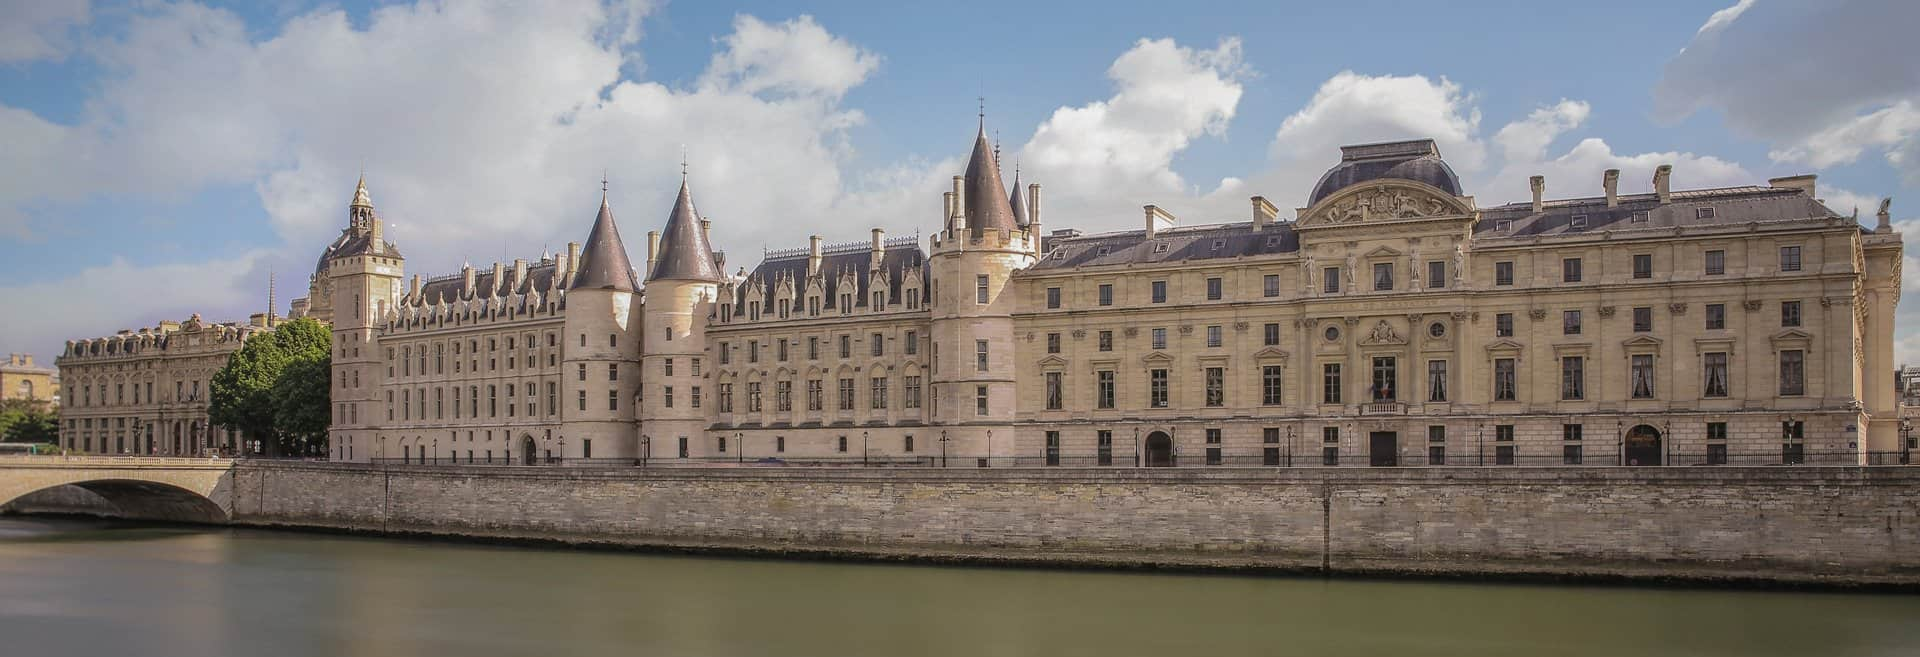 The Conciergerie on the western side of the Île de la Cité , Paris.